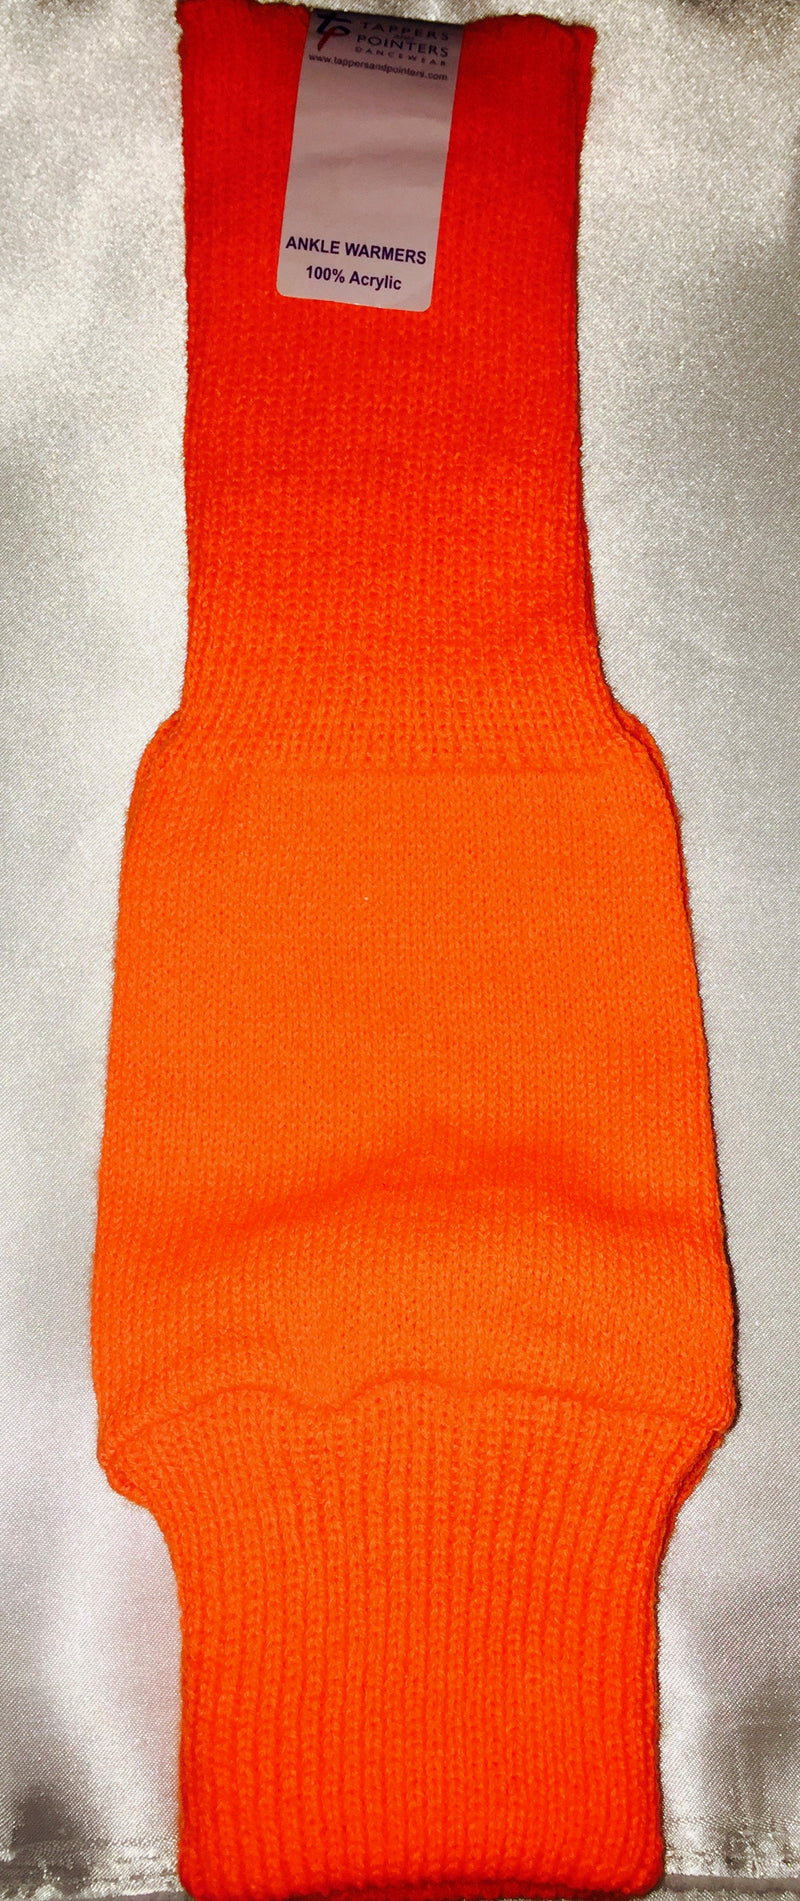 Adults Orange Ankle Warmers